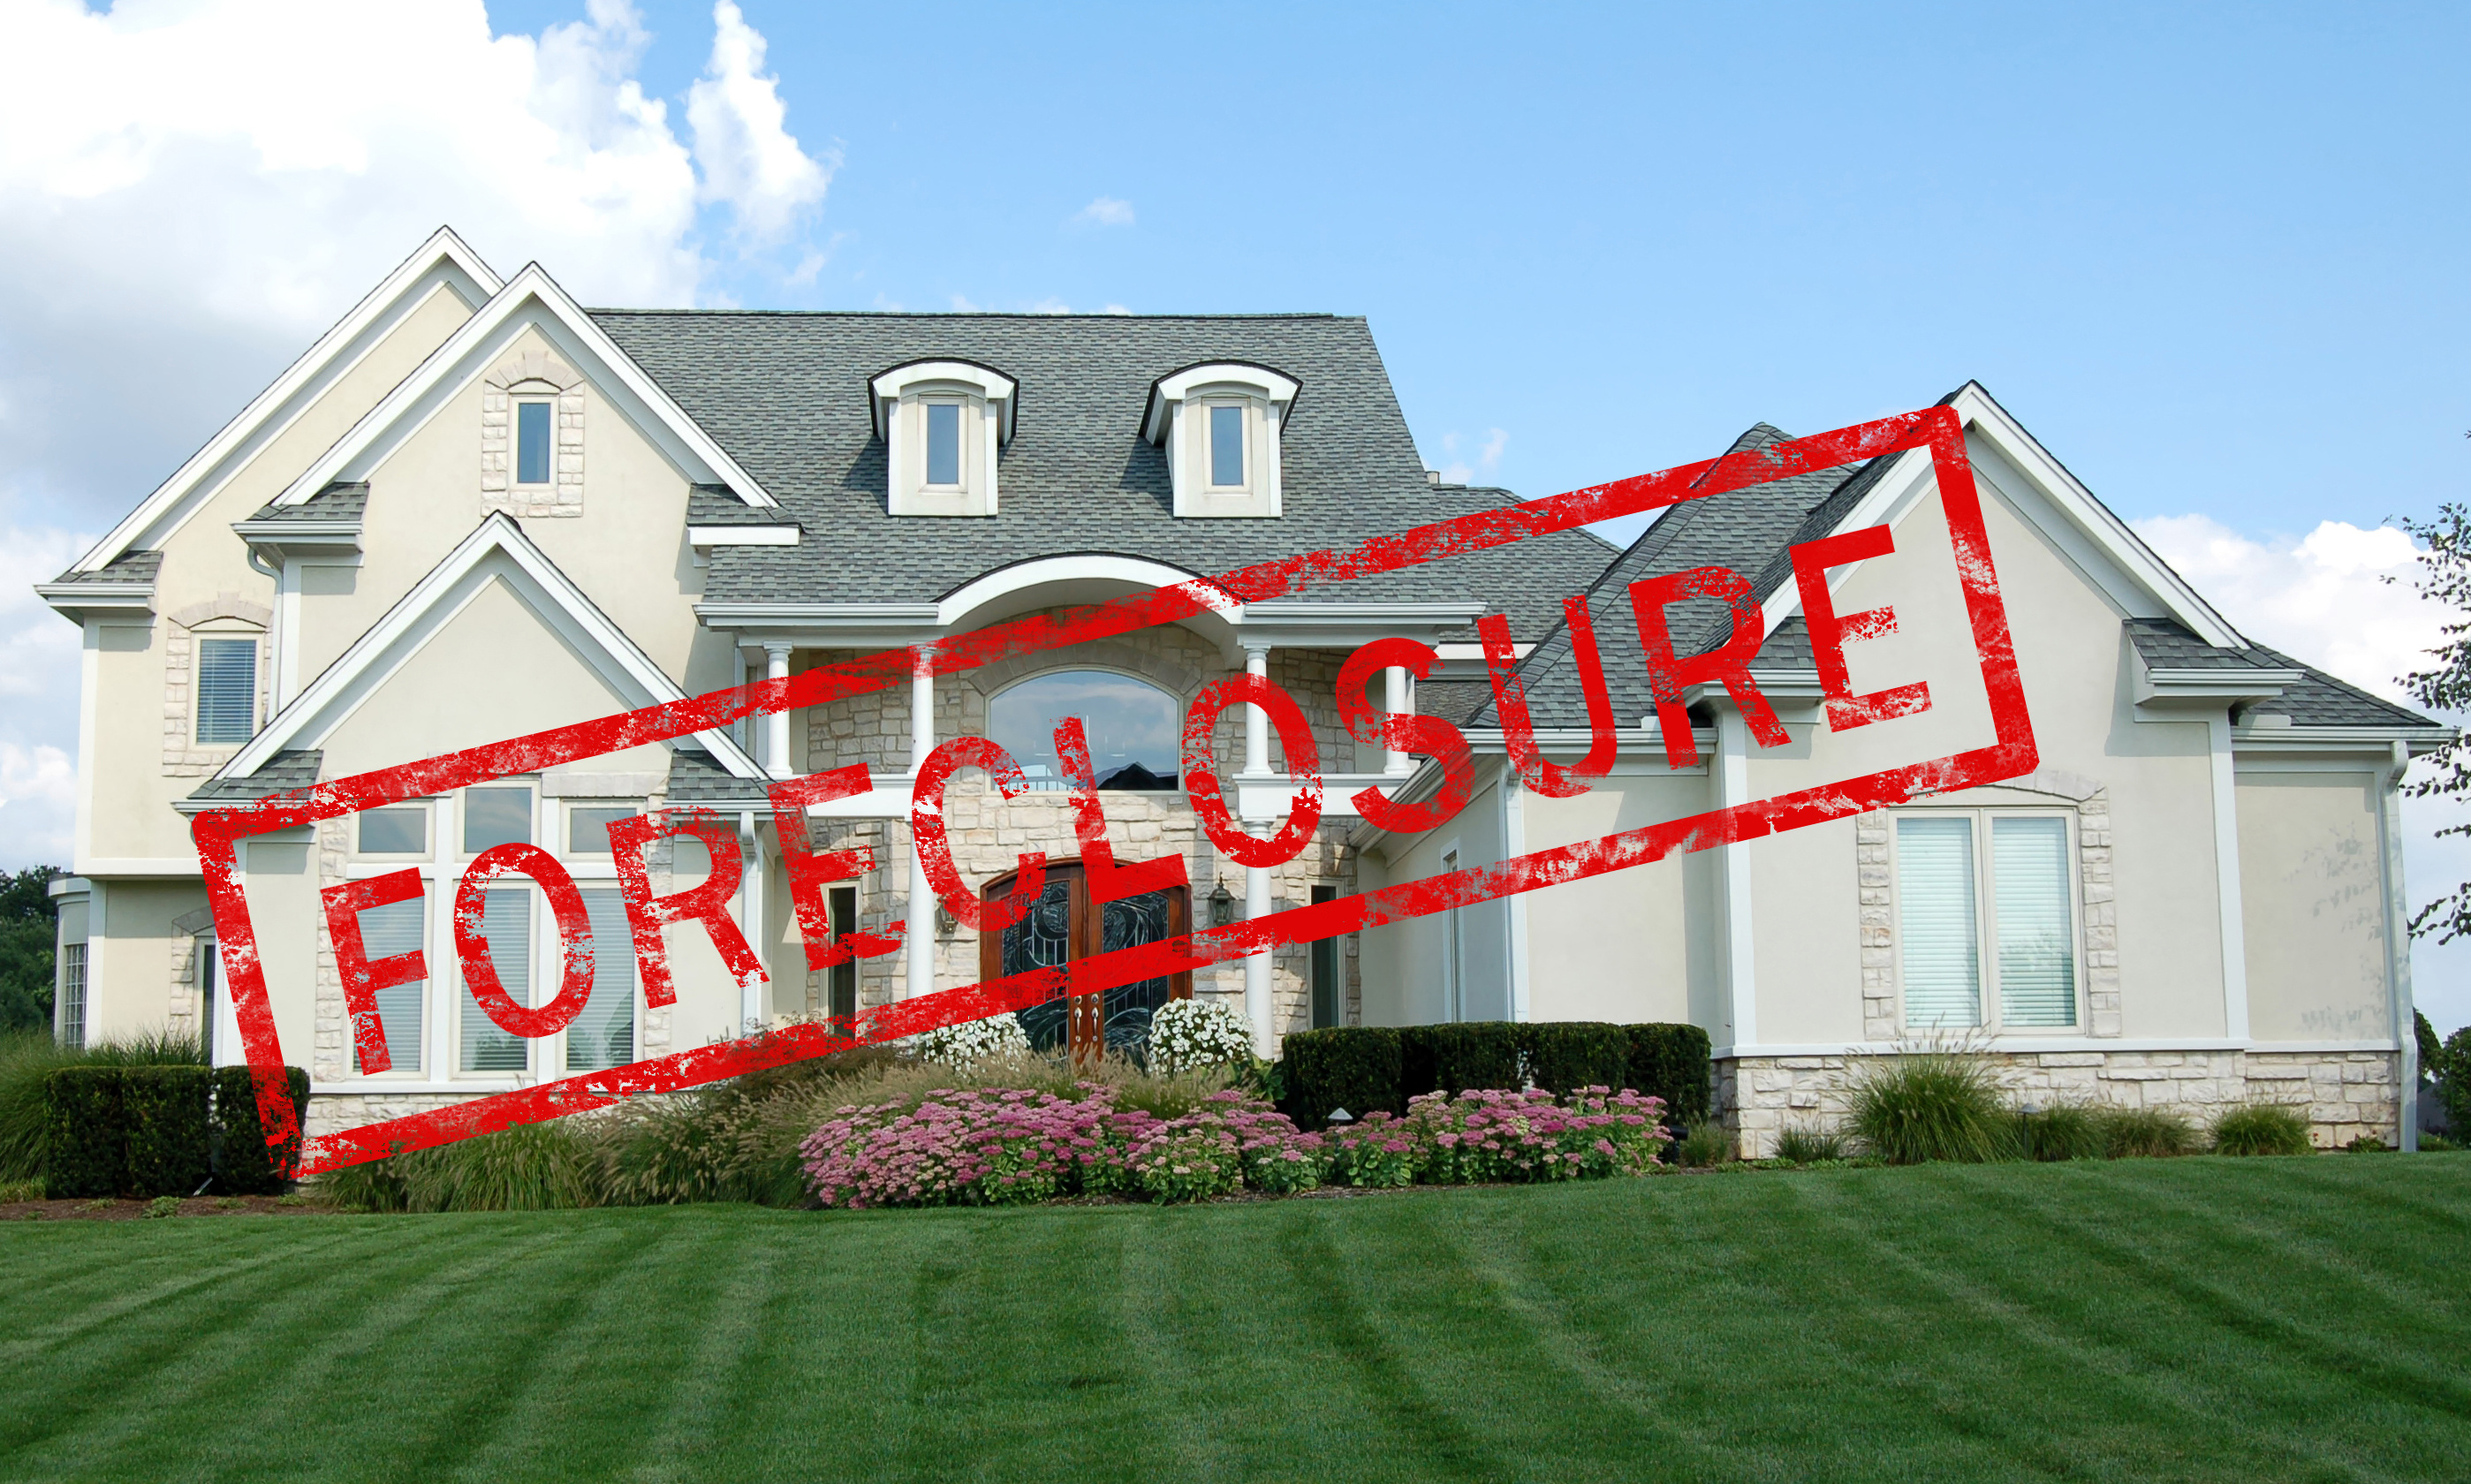 Call Barnes Appraisal Company when you need valuations pertaining to Comanche foreclosures